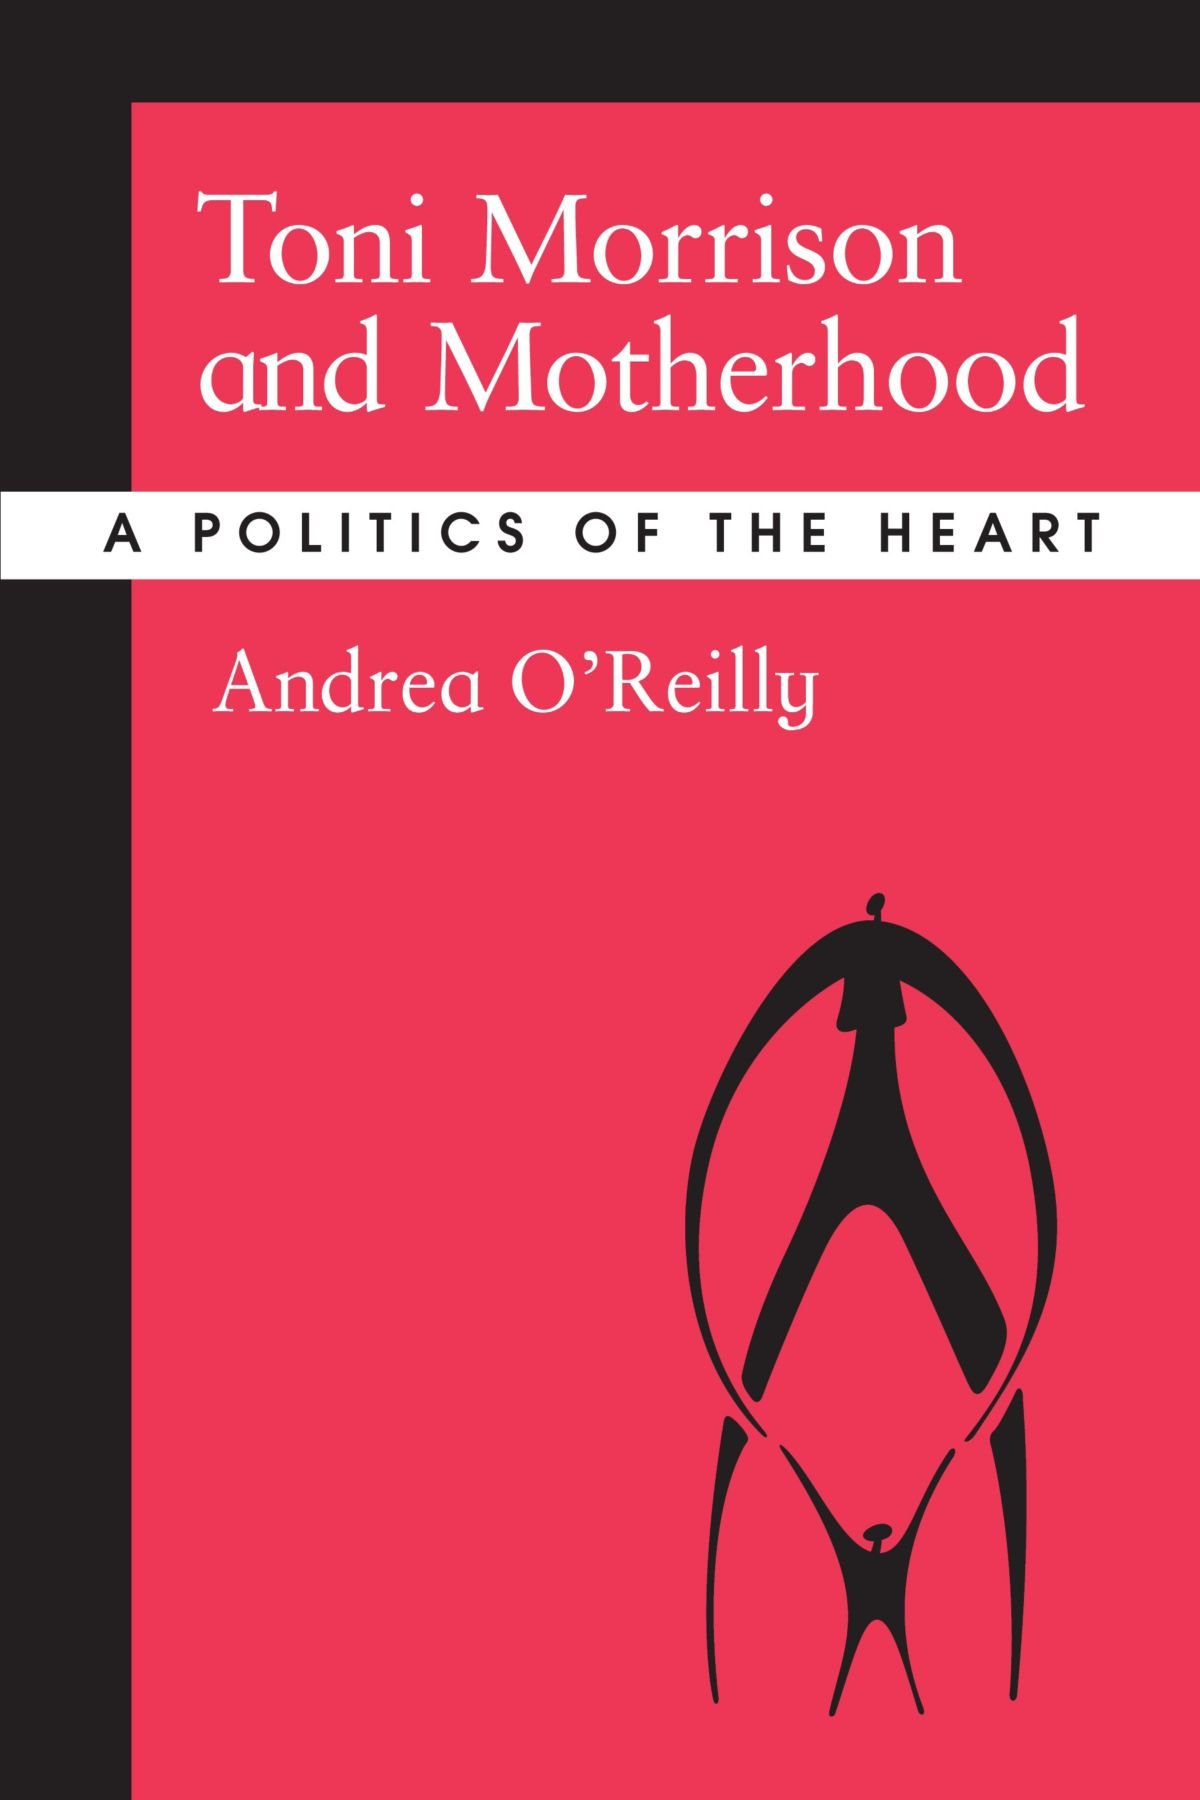 com toni morrison and motherhood a politics of the heart com toni morrison and motherhood a politics of the heart 9780791460764 andrea o reilly books